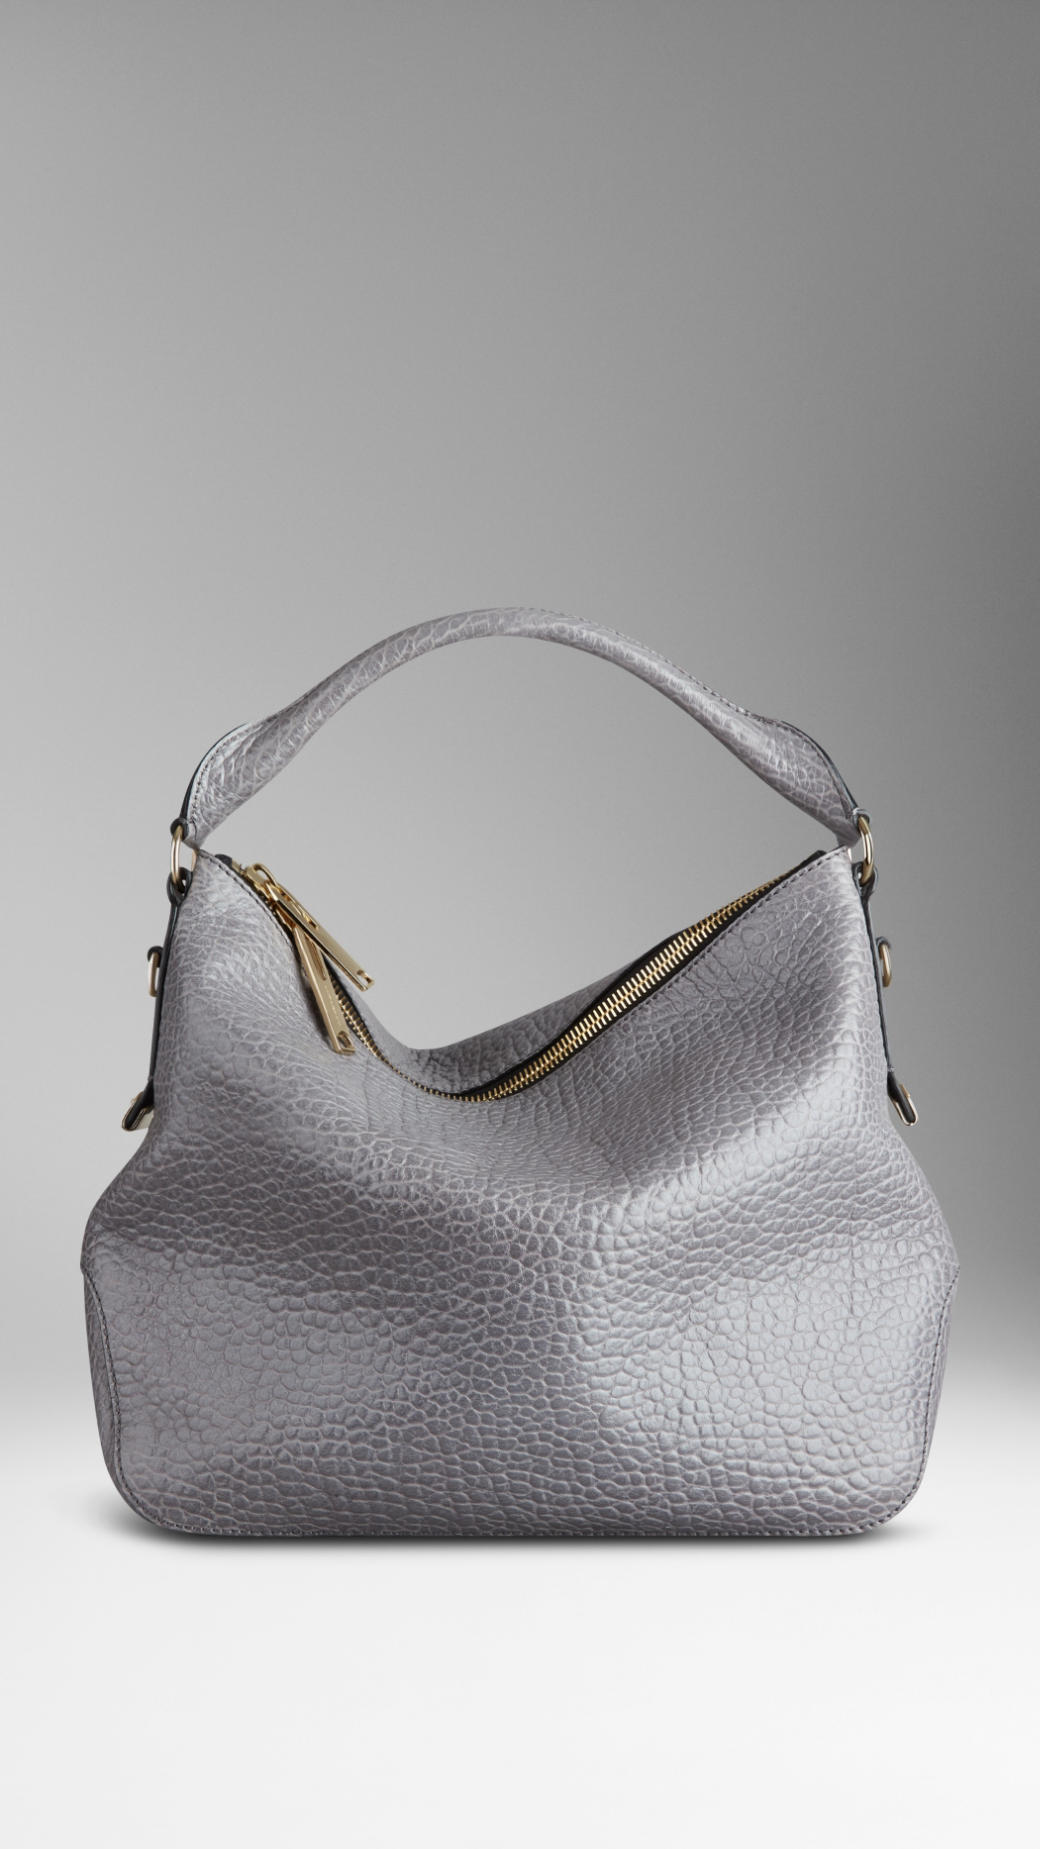 246143ddf8cc Lyst - Burberry Small Heritage Grain Leather Hobo Bag in Gray